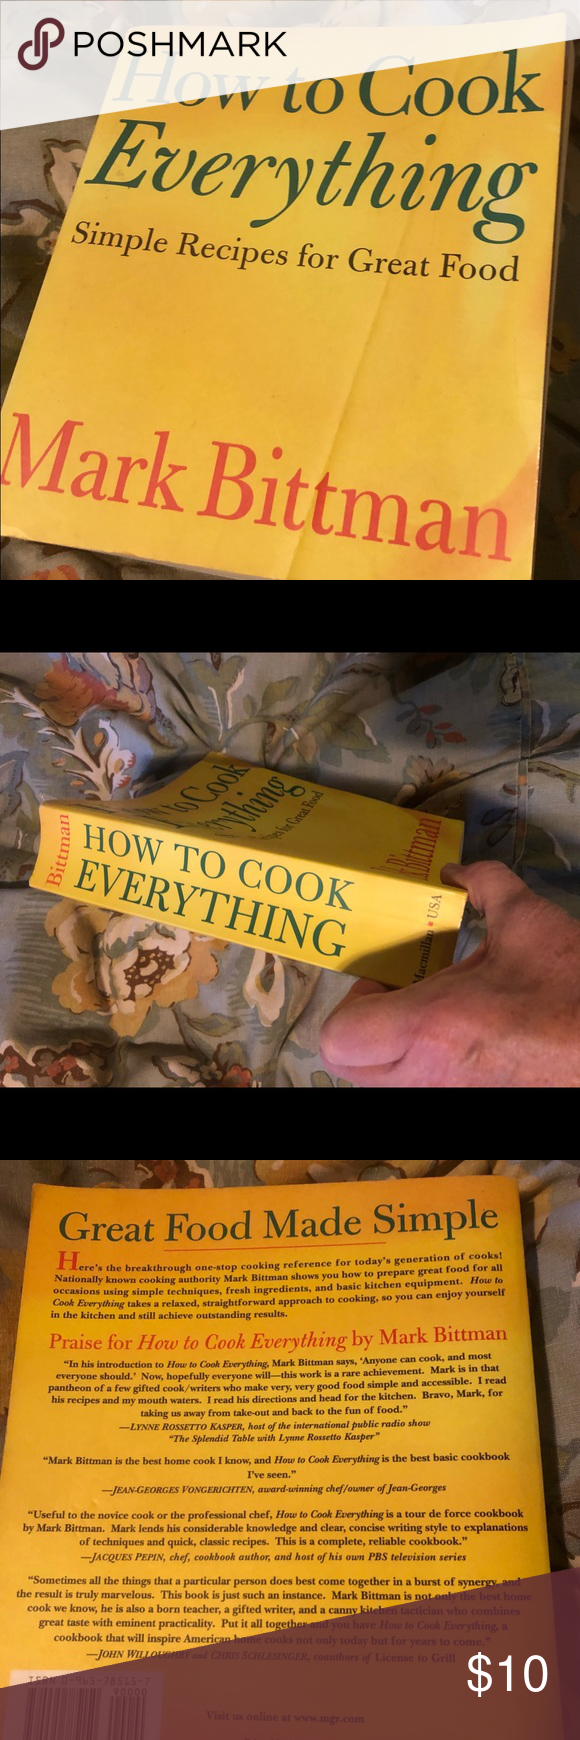 Cookbook Bittman HOW TO COOK EVERYTHING Simple recipes for great food by Mark Bittman   All offers considered use the offer button Other #markbittmanrecipes Cookbook Bittman HOW TO COOK EVERYTHING Simple recipes for great food by Mark Bittman   All offers considered use the offer button Other #markbittmanrecipes